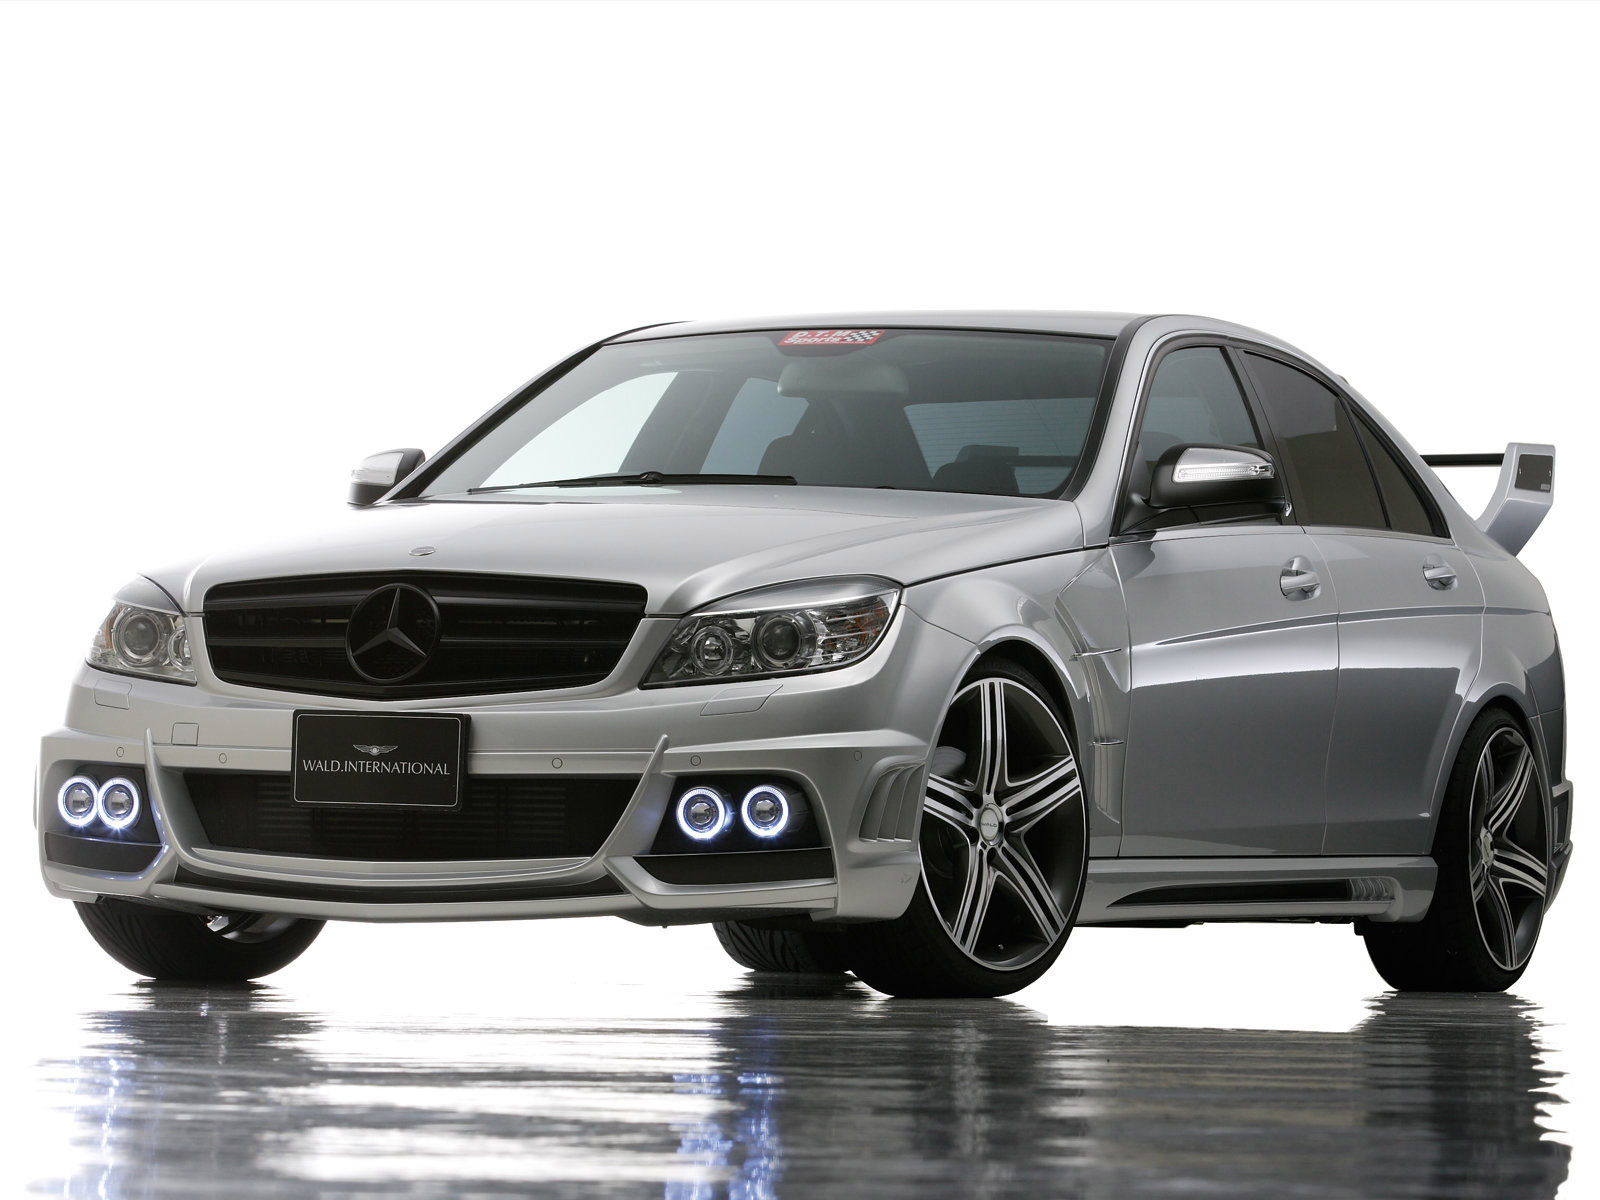 wald mercedes c klasse w204 2008 wald mercedes c klasse w204 2008 photo 01 car in pictures. Black Bedroom Furniture Sets. Home Design Ideas